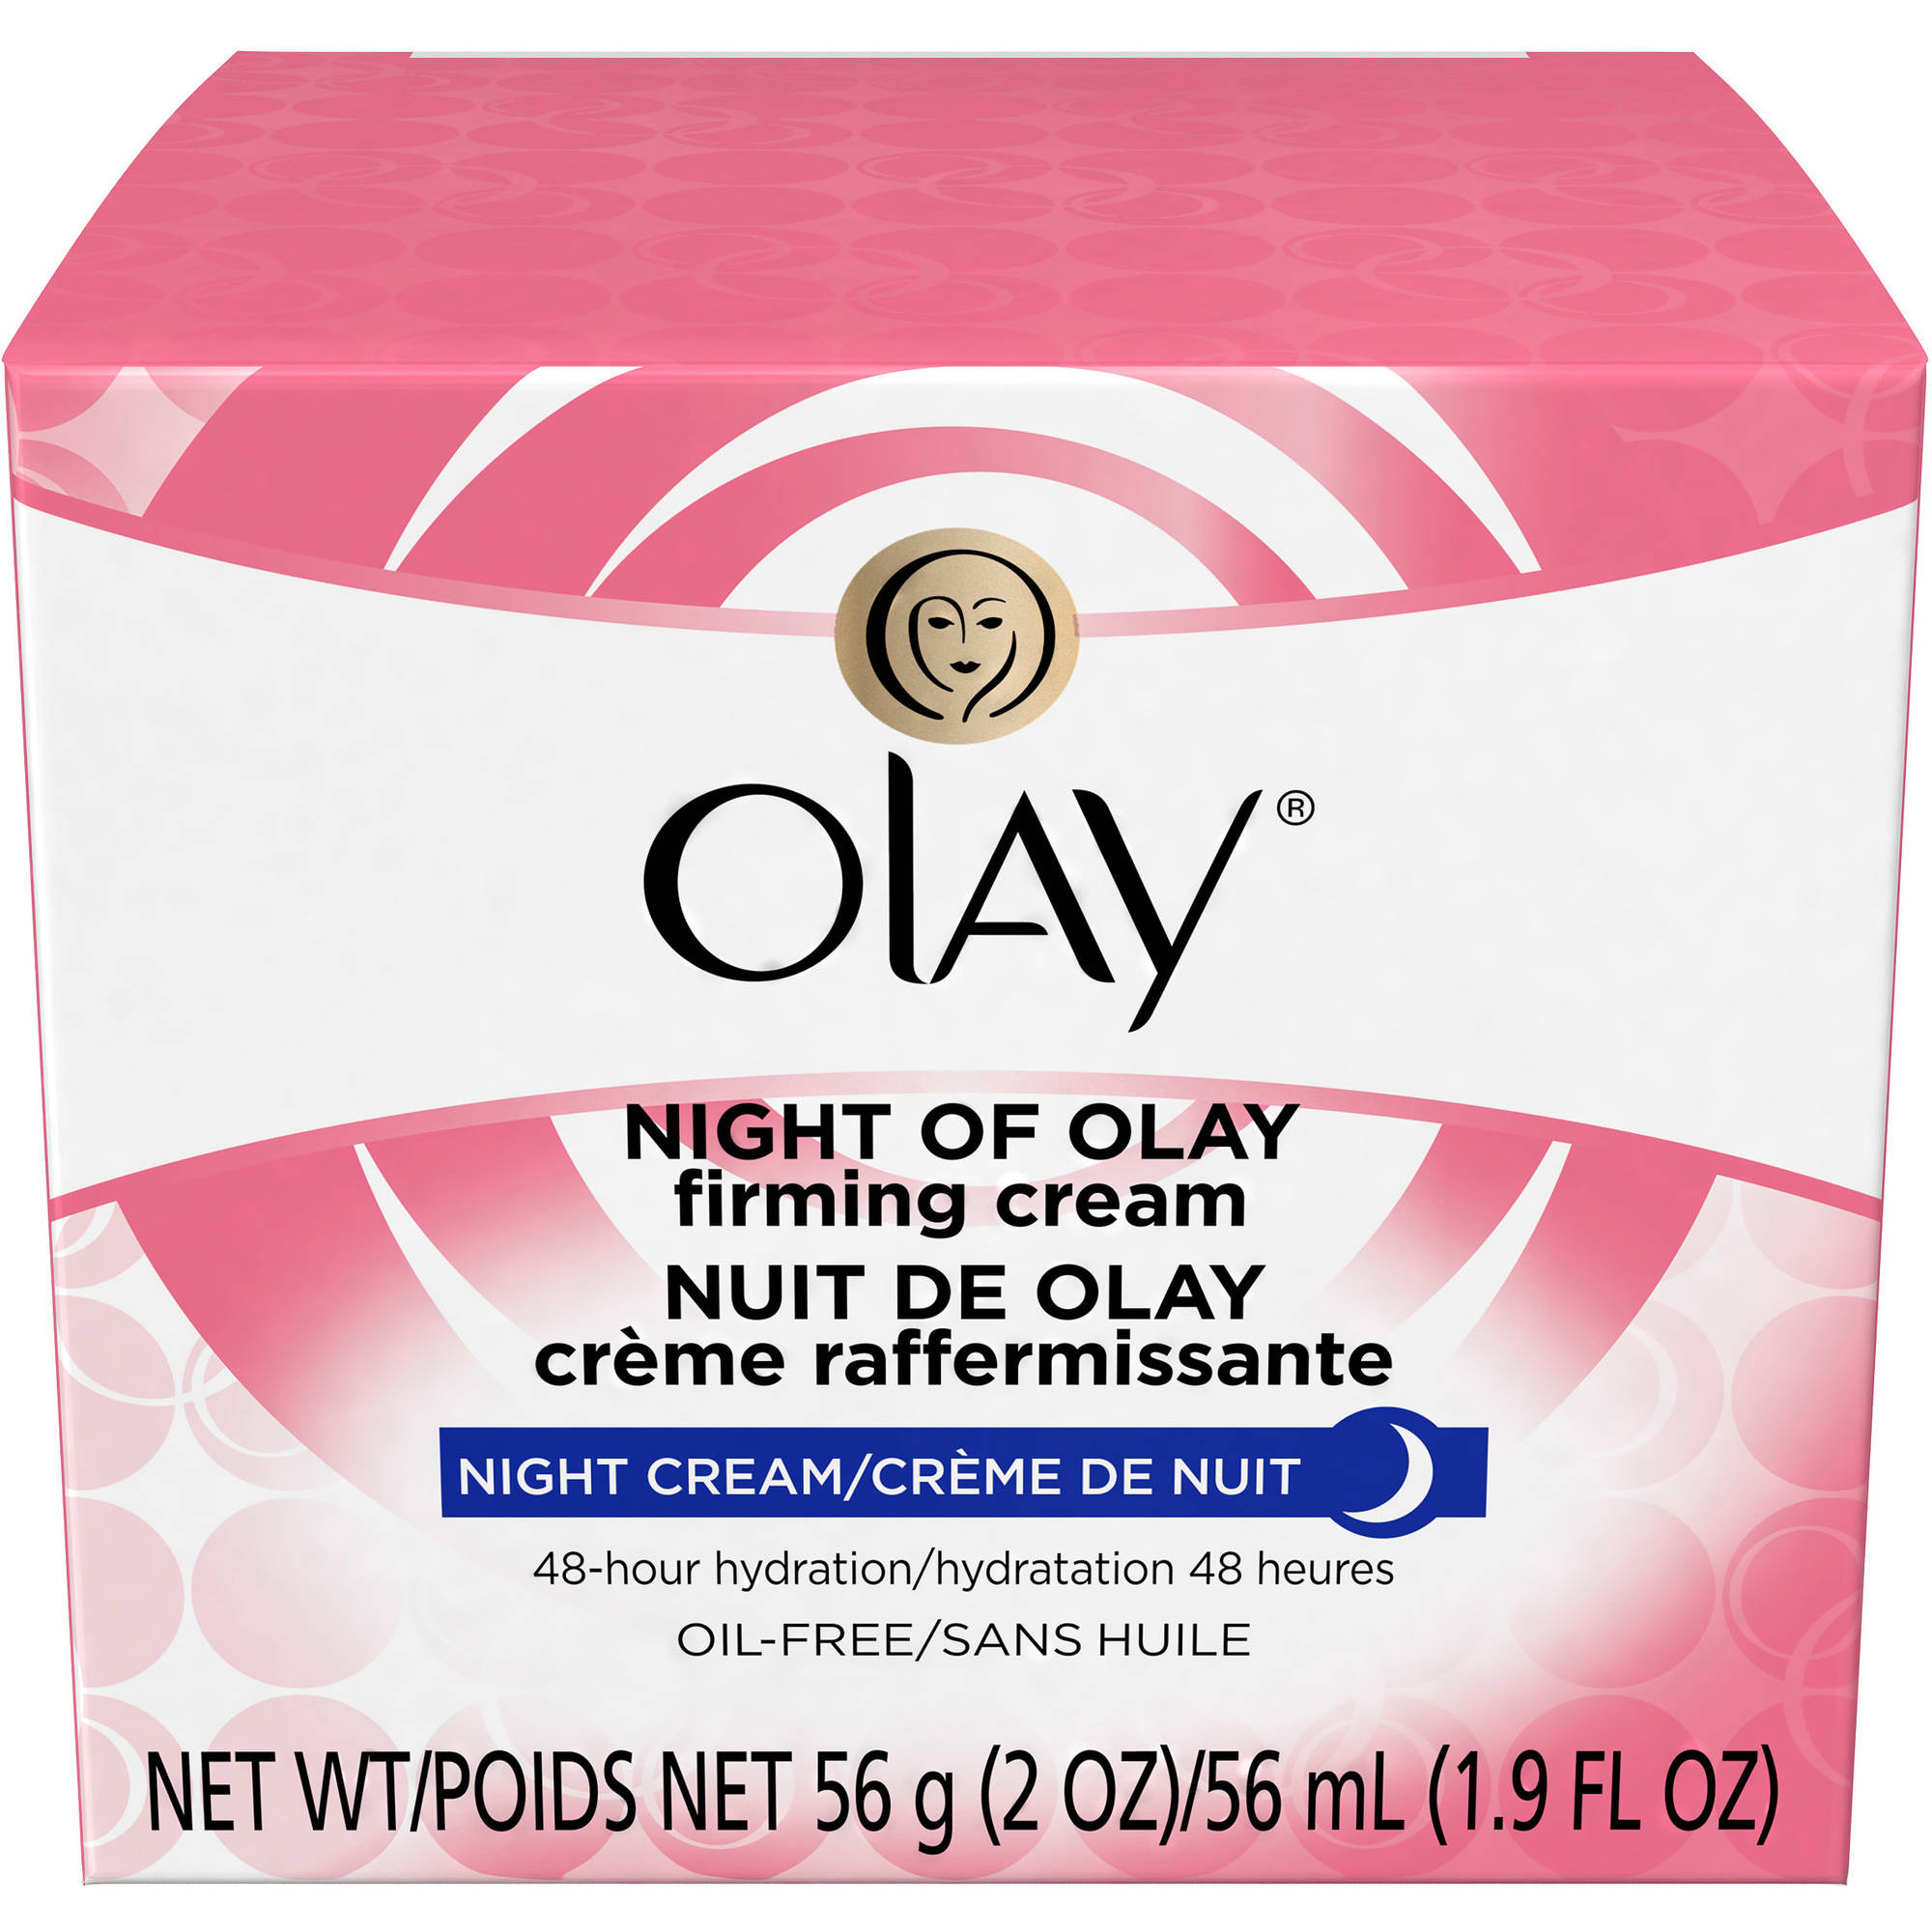 Olay Night Of Olay Firming Facial Moisturizer Cream, 2 oz